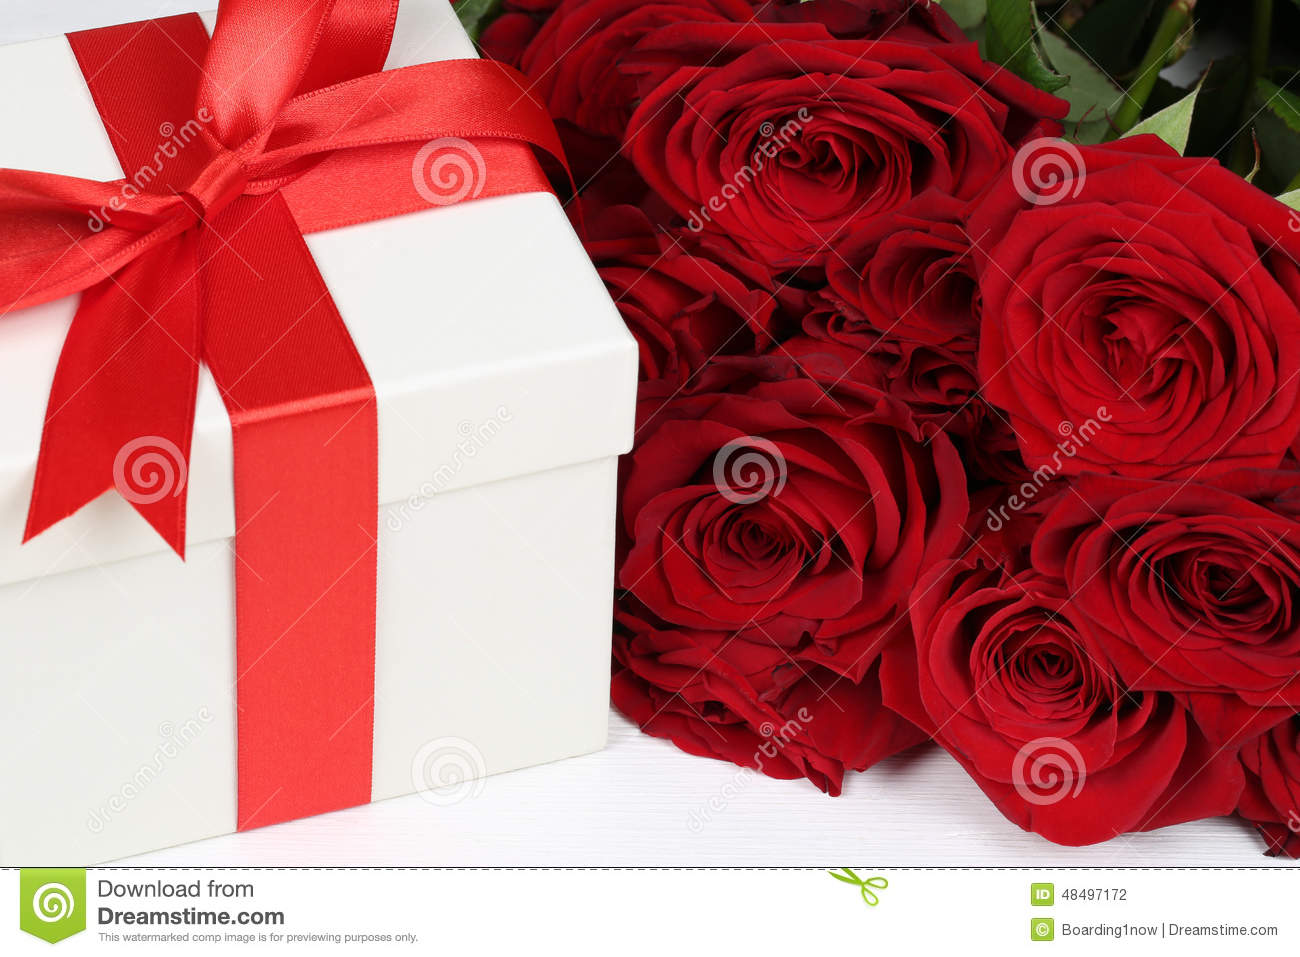 Gift Box With Roses For Birthday Gifts Valentine S Or Mother S